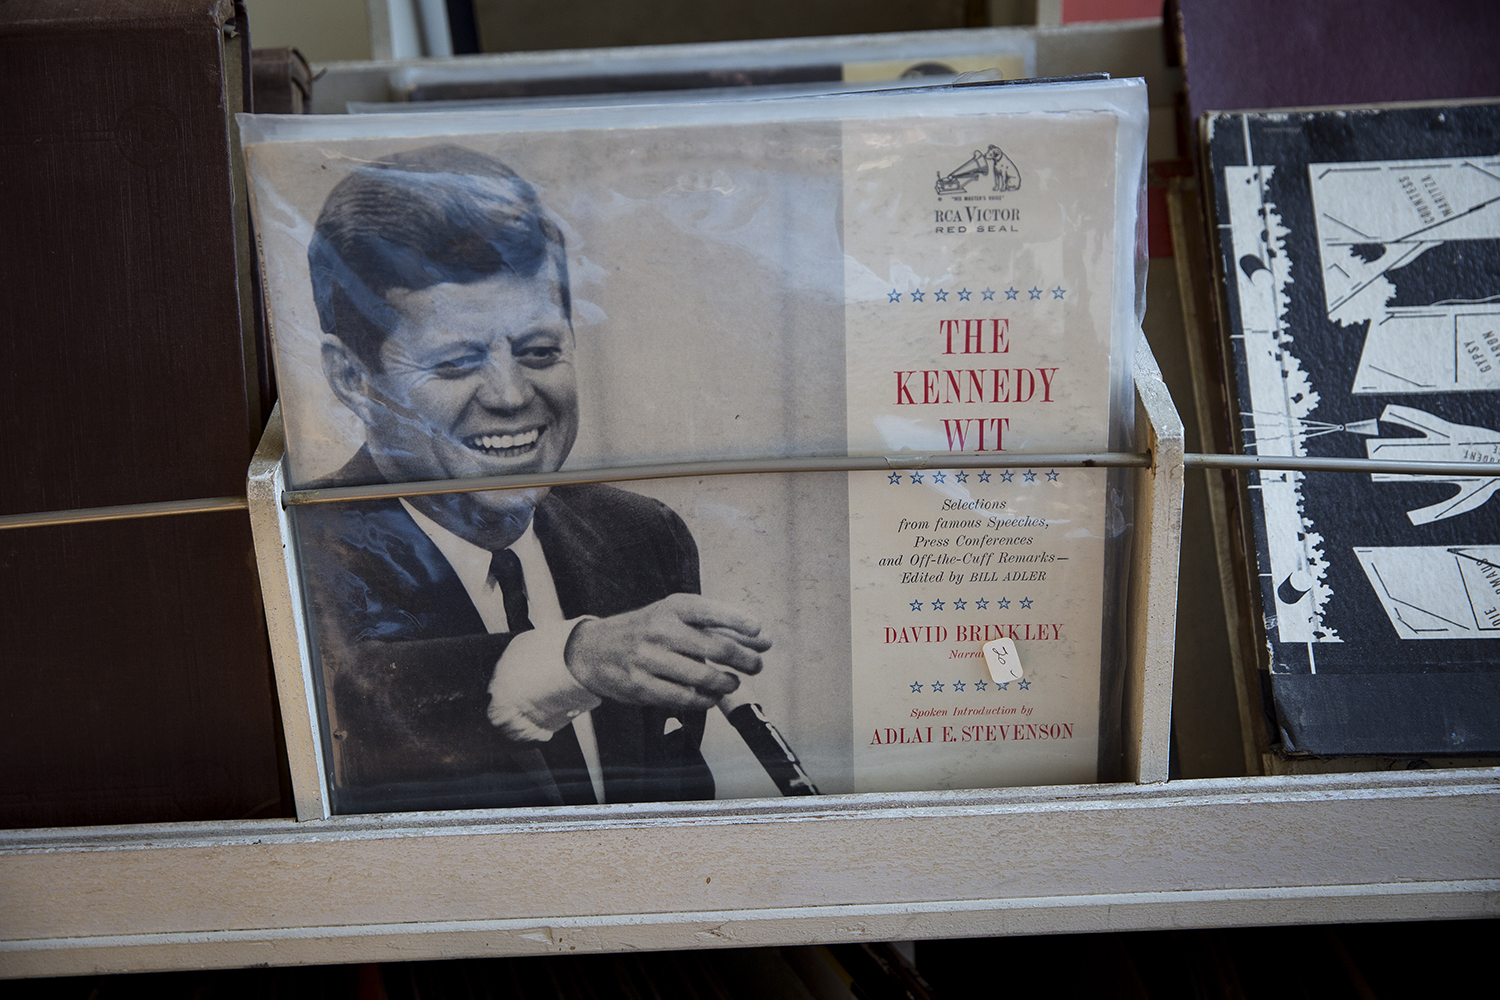 A collection of speeches by President John F. Kennedy in the rack Thursday at Recycled Records. [Rich Saal/The State Journal-Register]